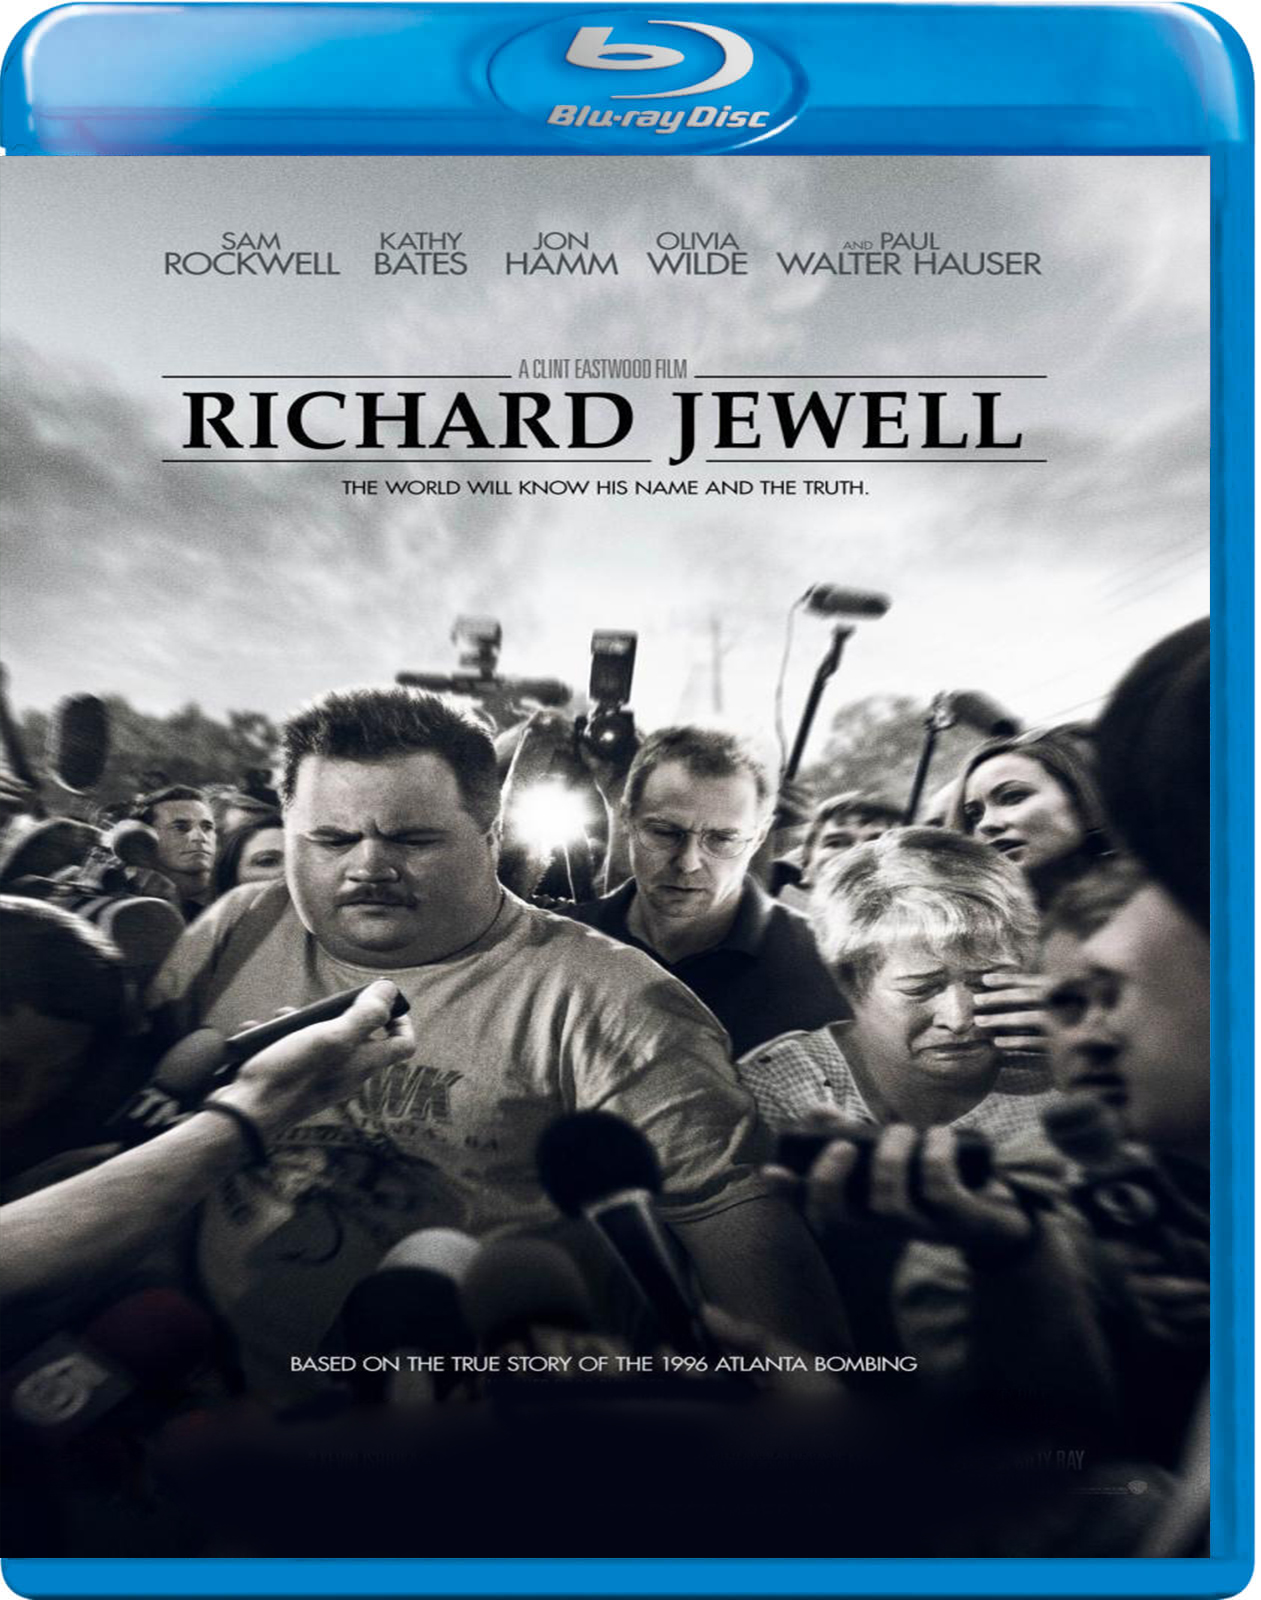 Richard Jewell [2019] [BD50] [Latino]